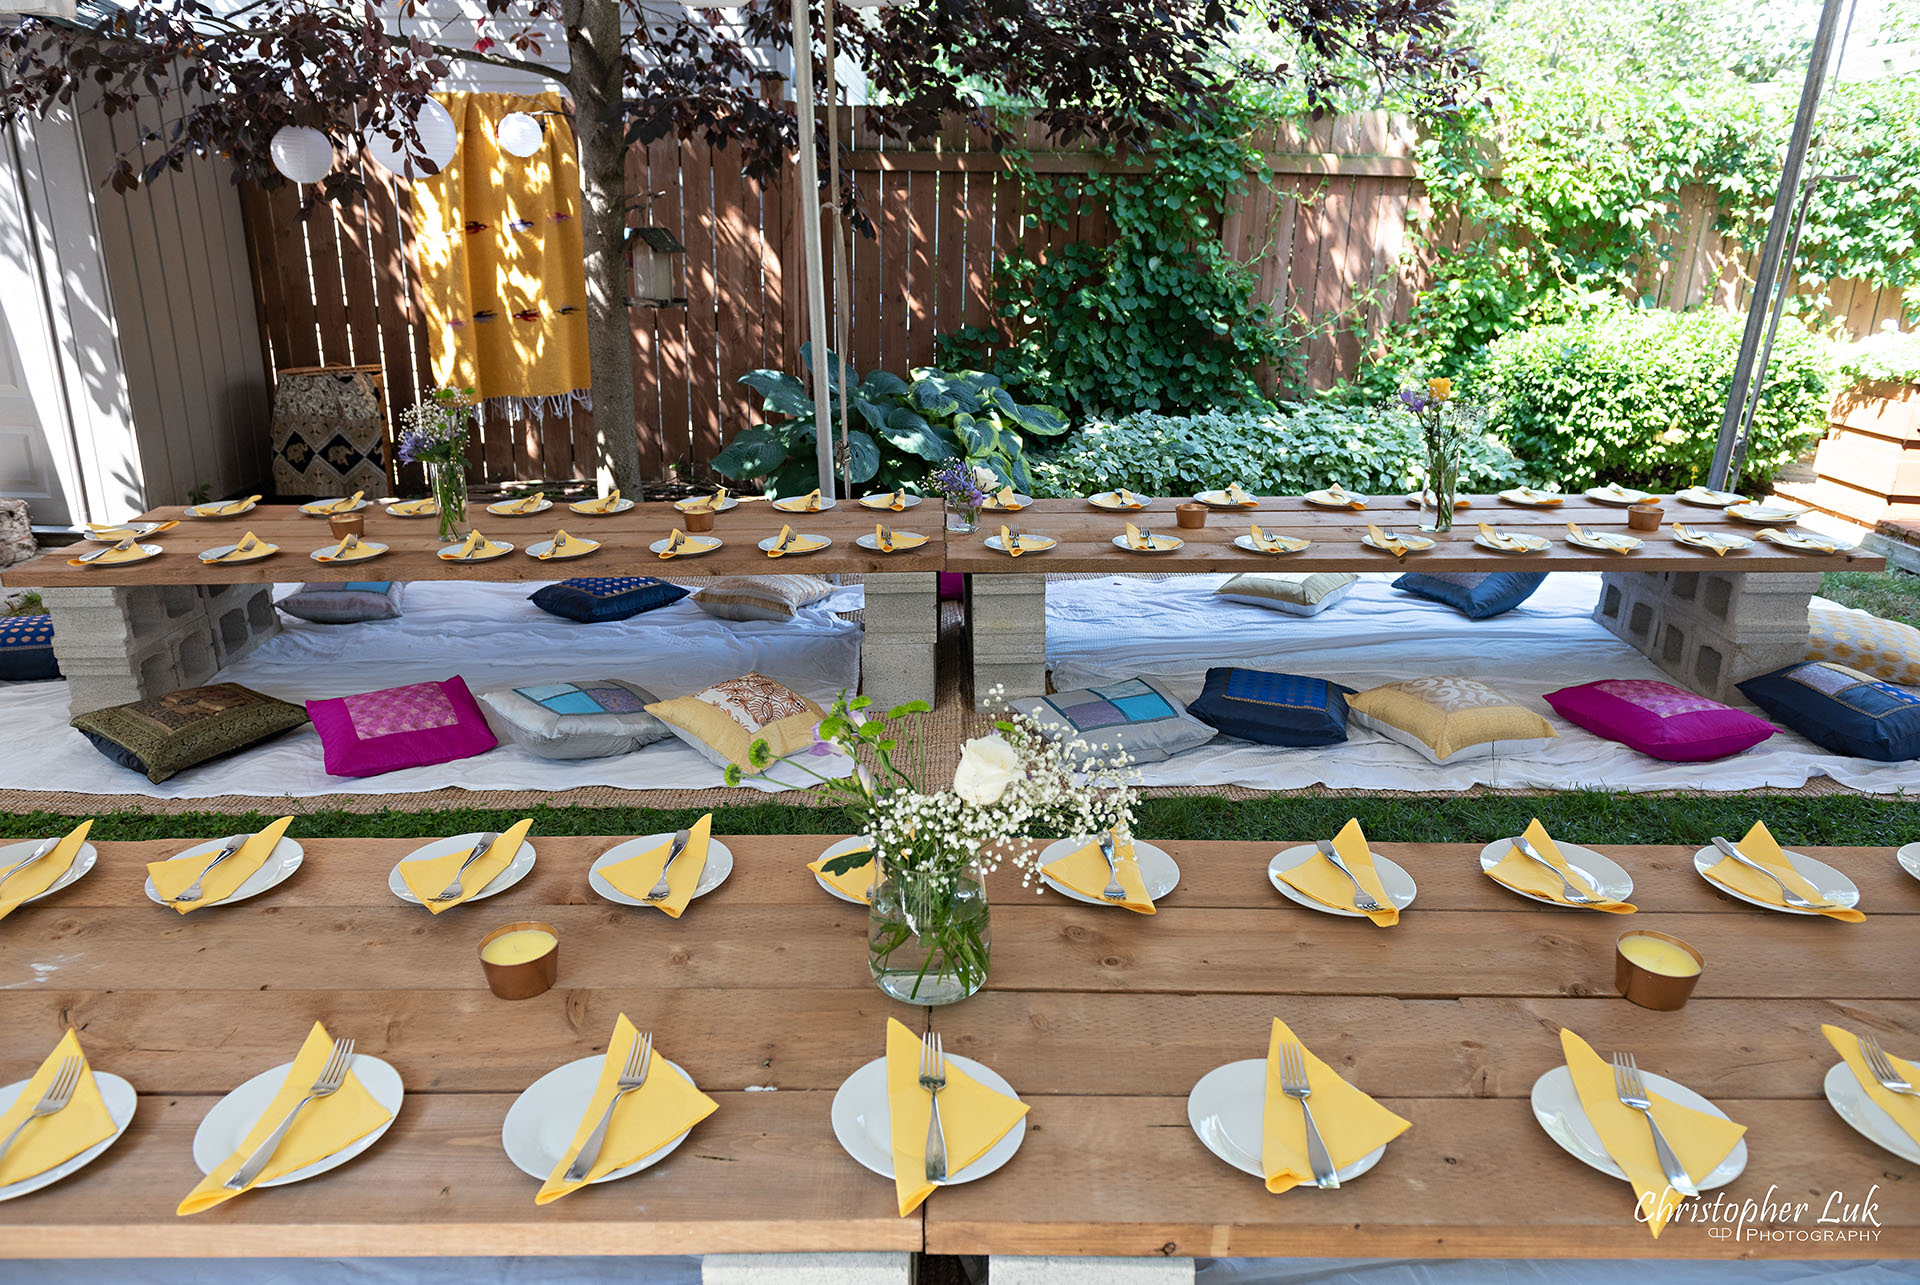 Christopher Luk Toronto Wedding Engagement Event Photographer Bohemian Boho Chic Backyard Tent Wedding Wood Table Planks Folded Napkins Plates Floral Centrepieces Coloured Pillows Floor Mats Detail